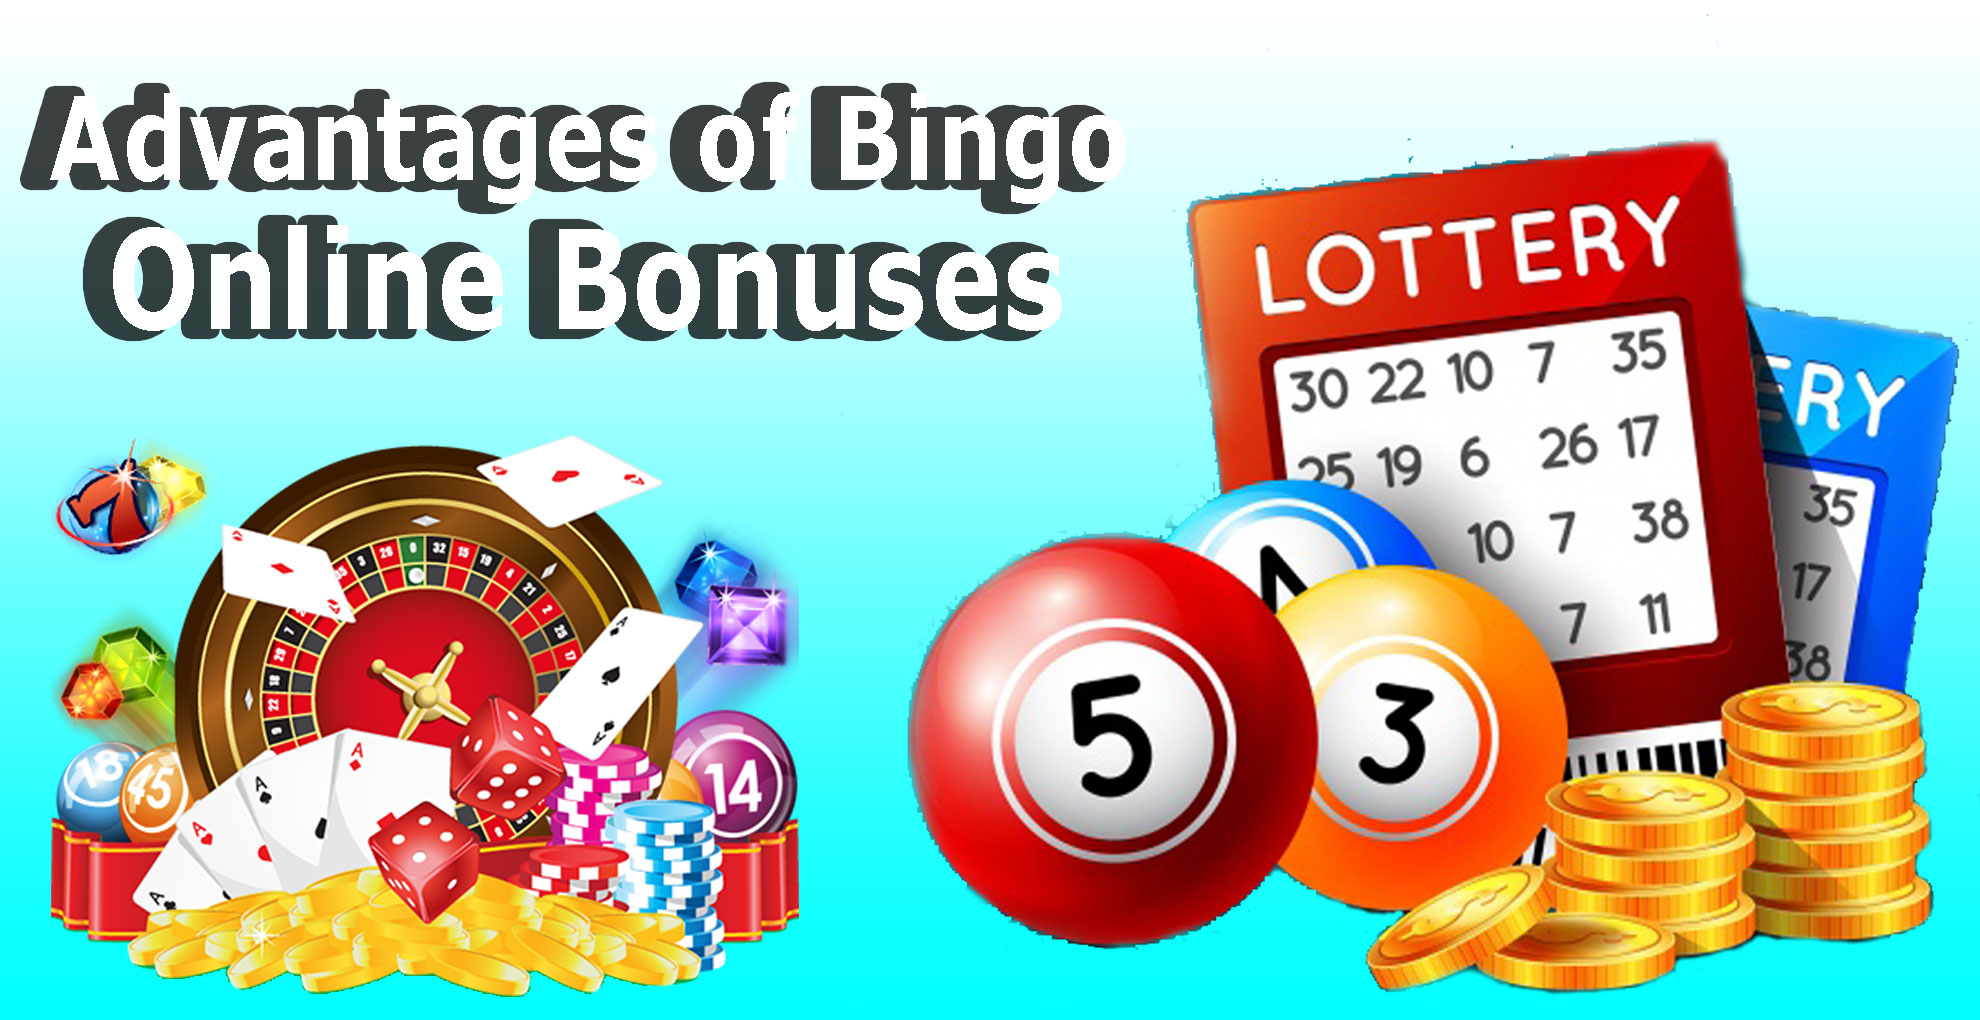 Advantages of Bingo Online Bonuses